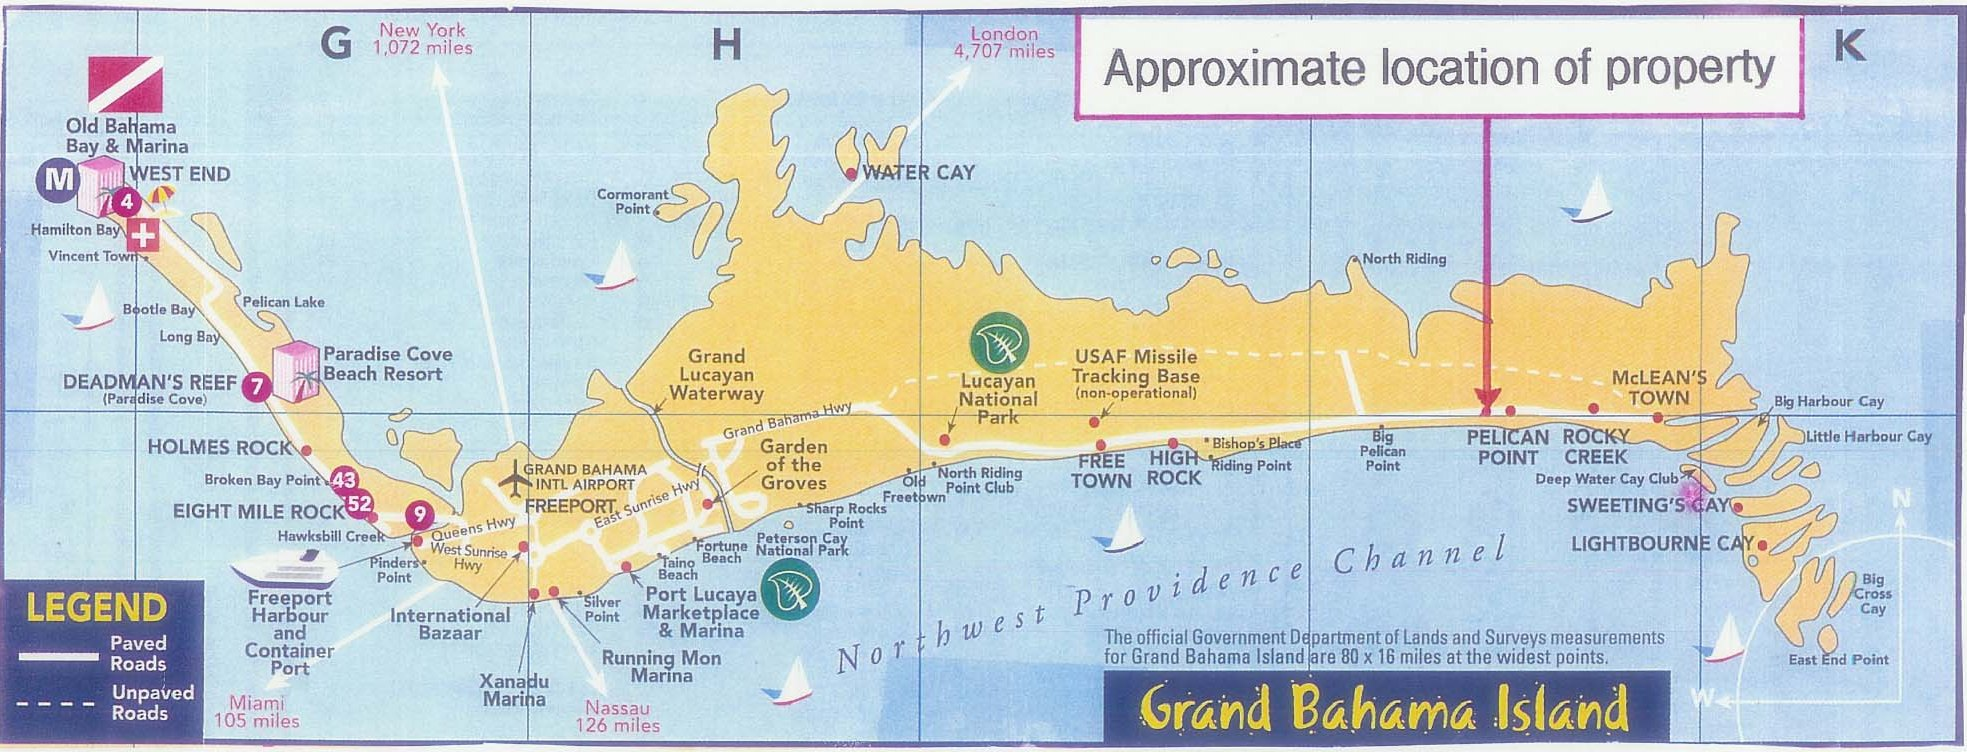 Grand Bahama Vacant Land at East Grand Bahama Freeport ID 2078